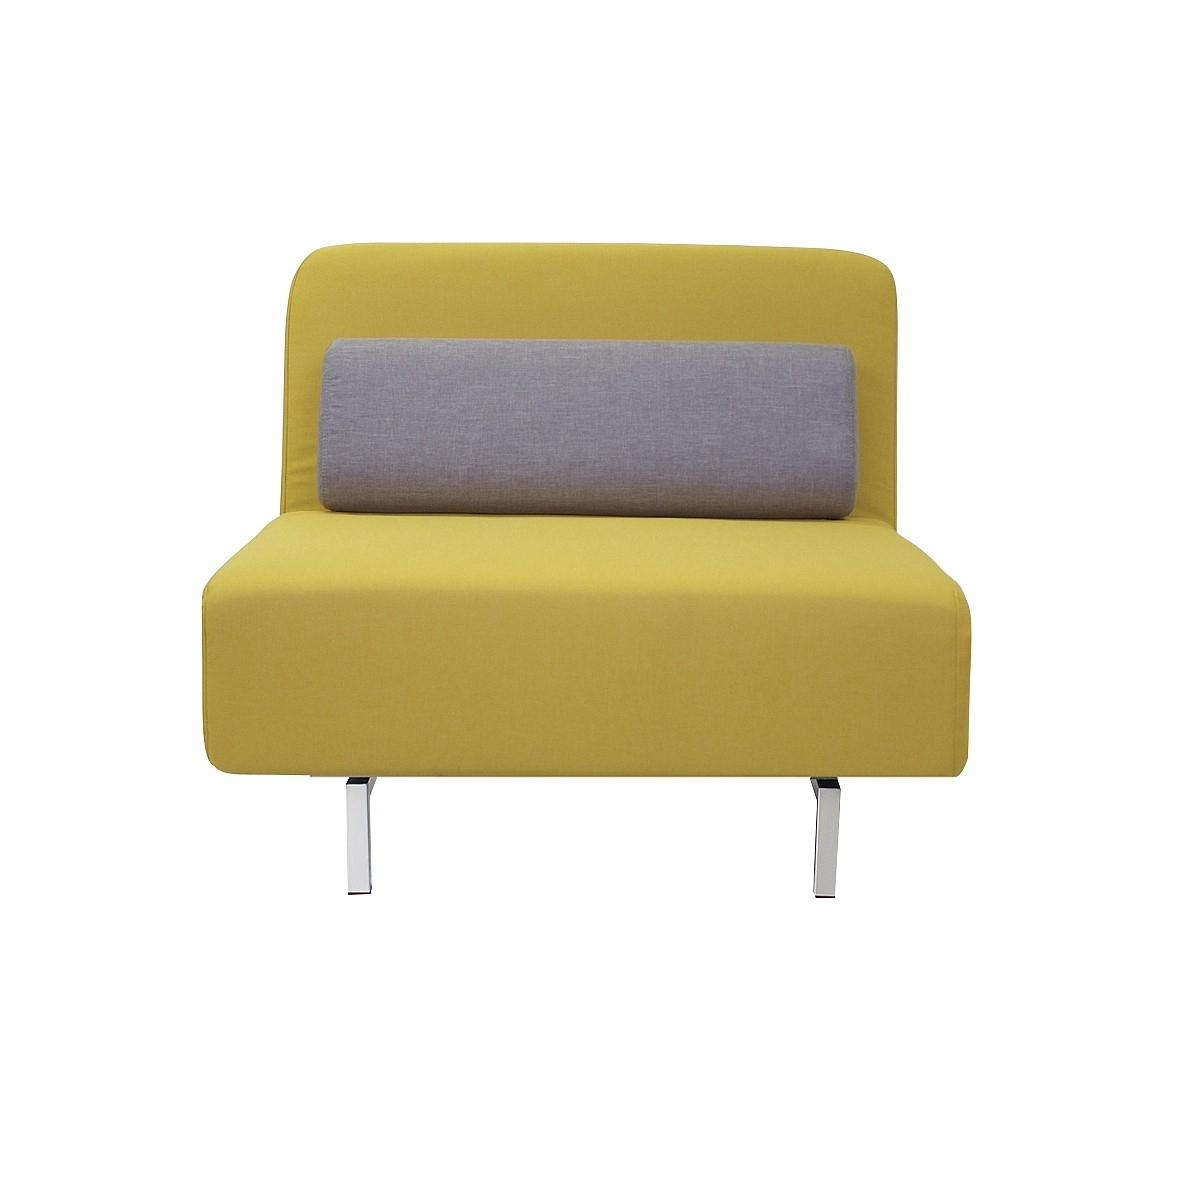 Muddler Sofa Bed – Yellow/grey | Sofas | Living | Nood Nz Intended For Single Sofas (Image 5 of 10)